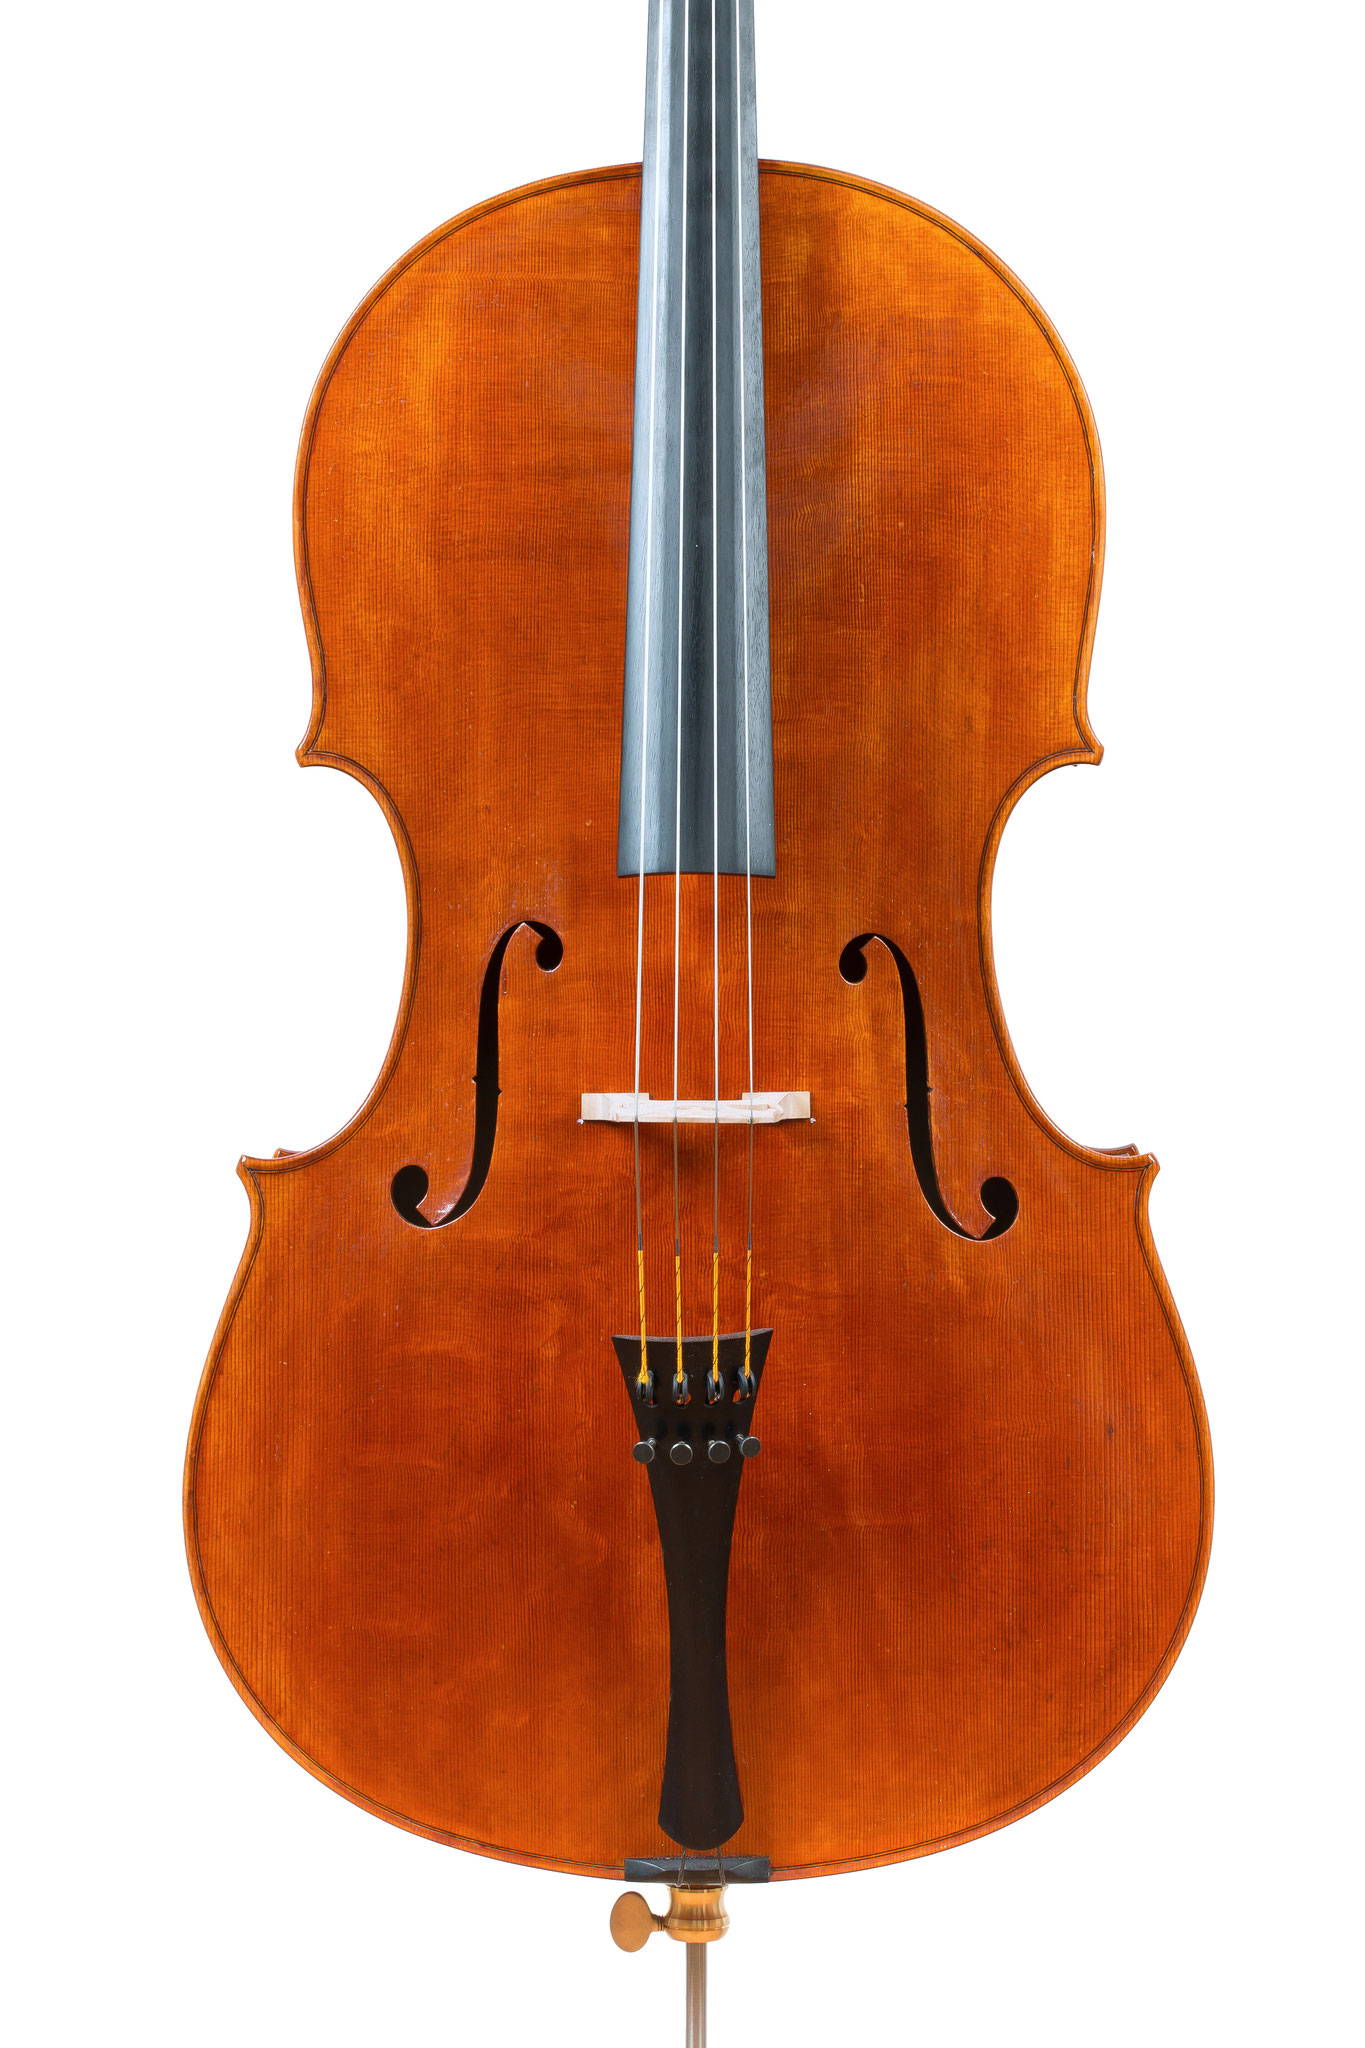 "7/8 Cello nach G.B. Guadagnini 1757 ""Teschenmacher"" (2015/CH), Photo: VDB Photography"